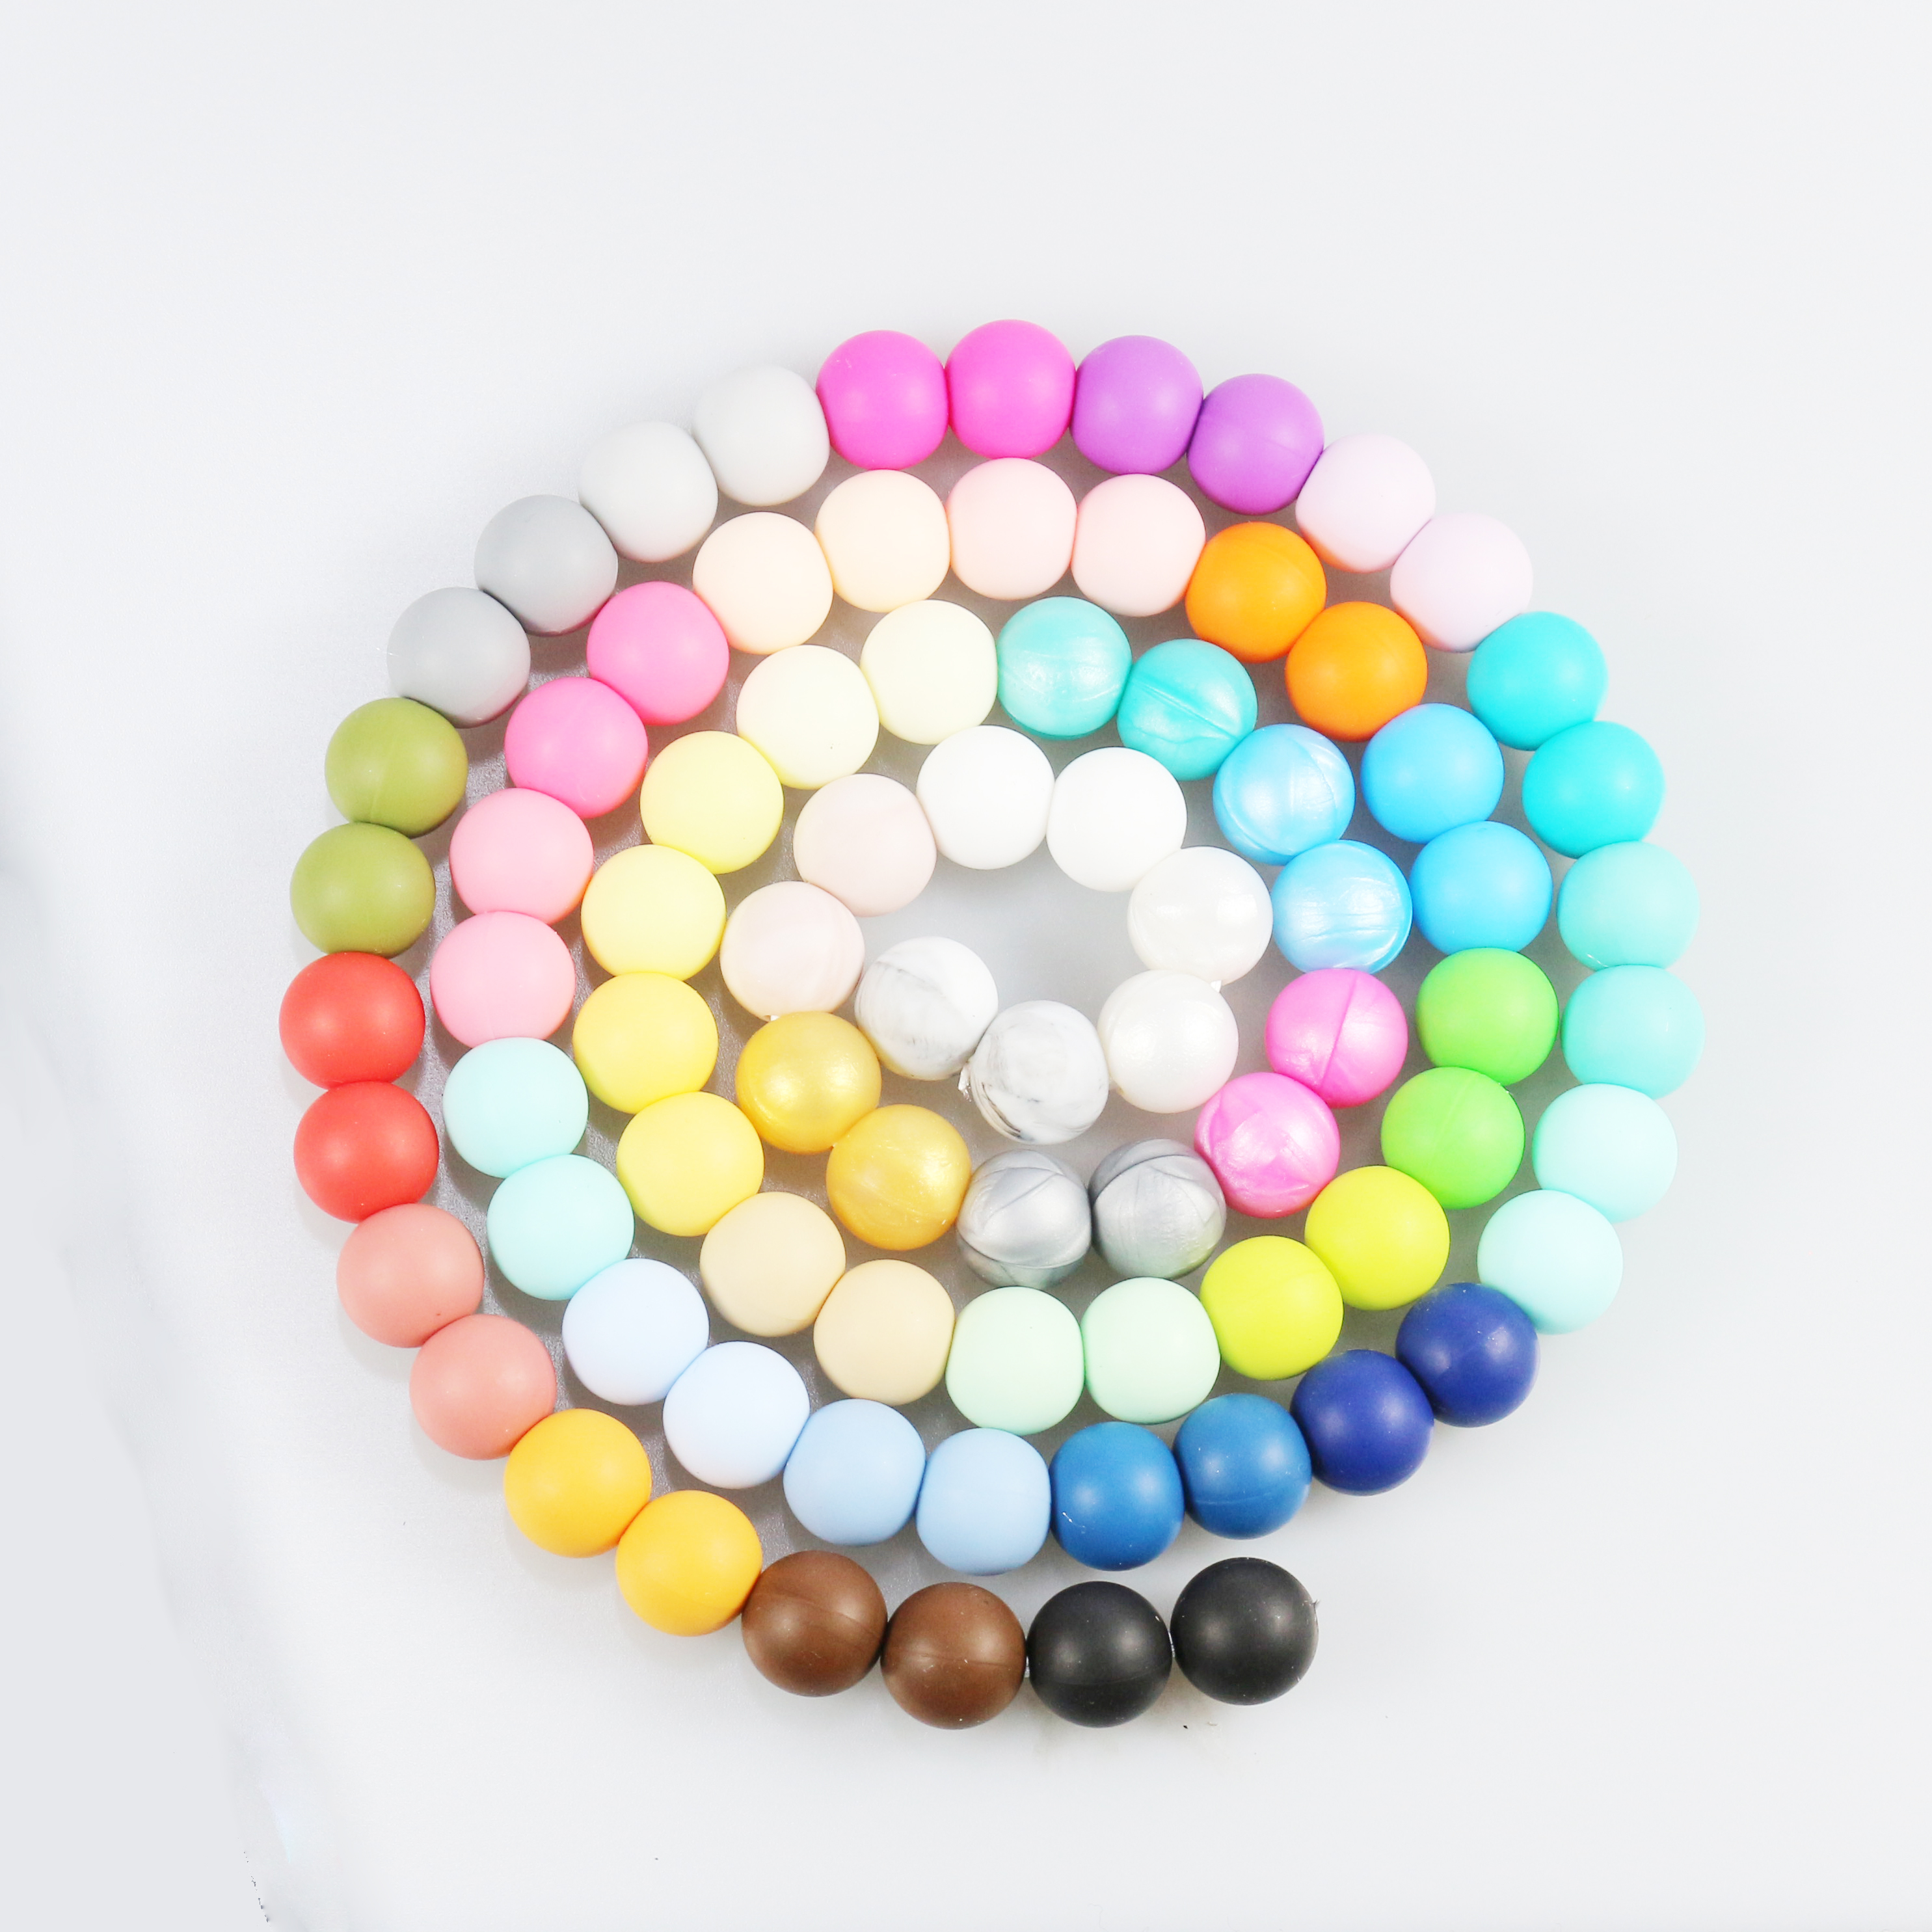 Fashion DIY Teething necklace 1000PCS 10MM Silicone beads  DIY Food grade Silicone DIY Beads Teethers 40 colors